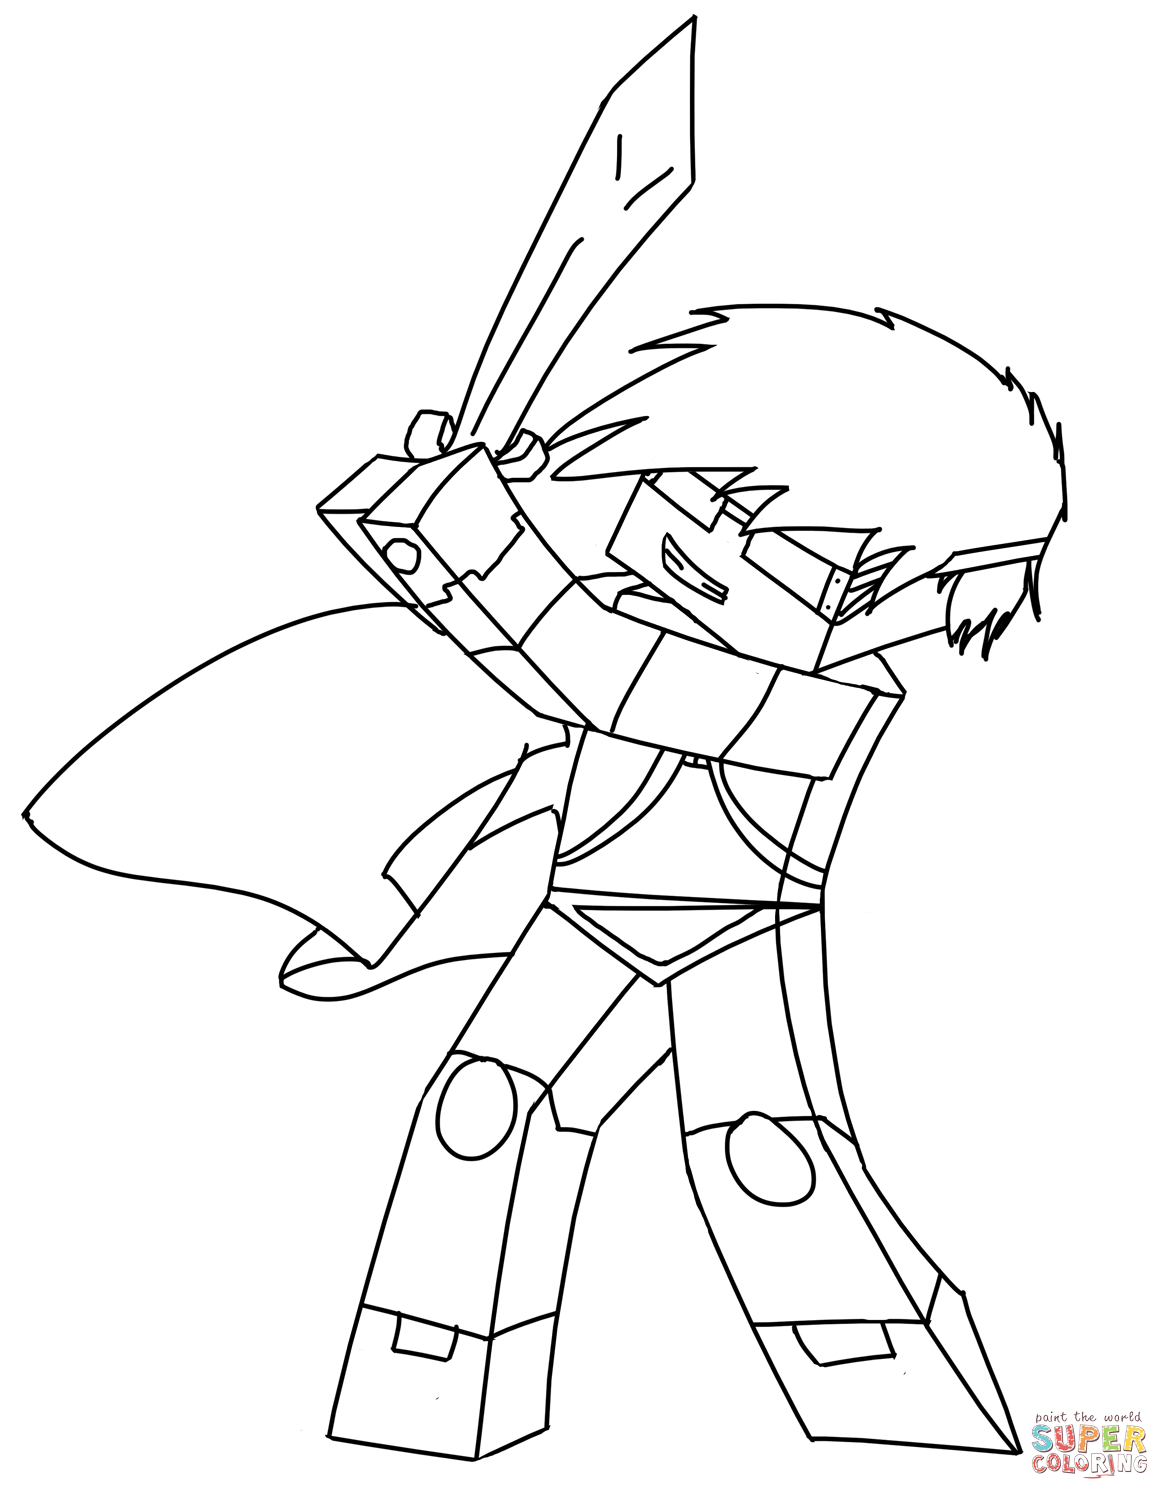 skydoesminecraft coloring pages skydoesminecraft coloring pages coloring pages pages skydoesminecraft coloring